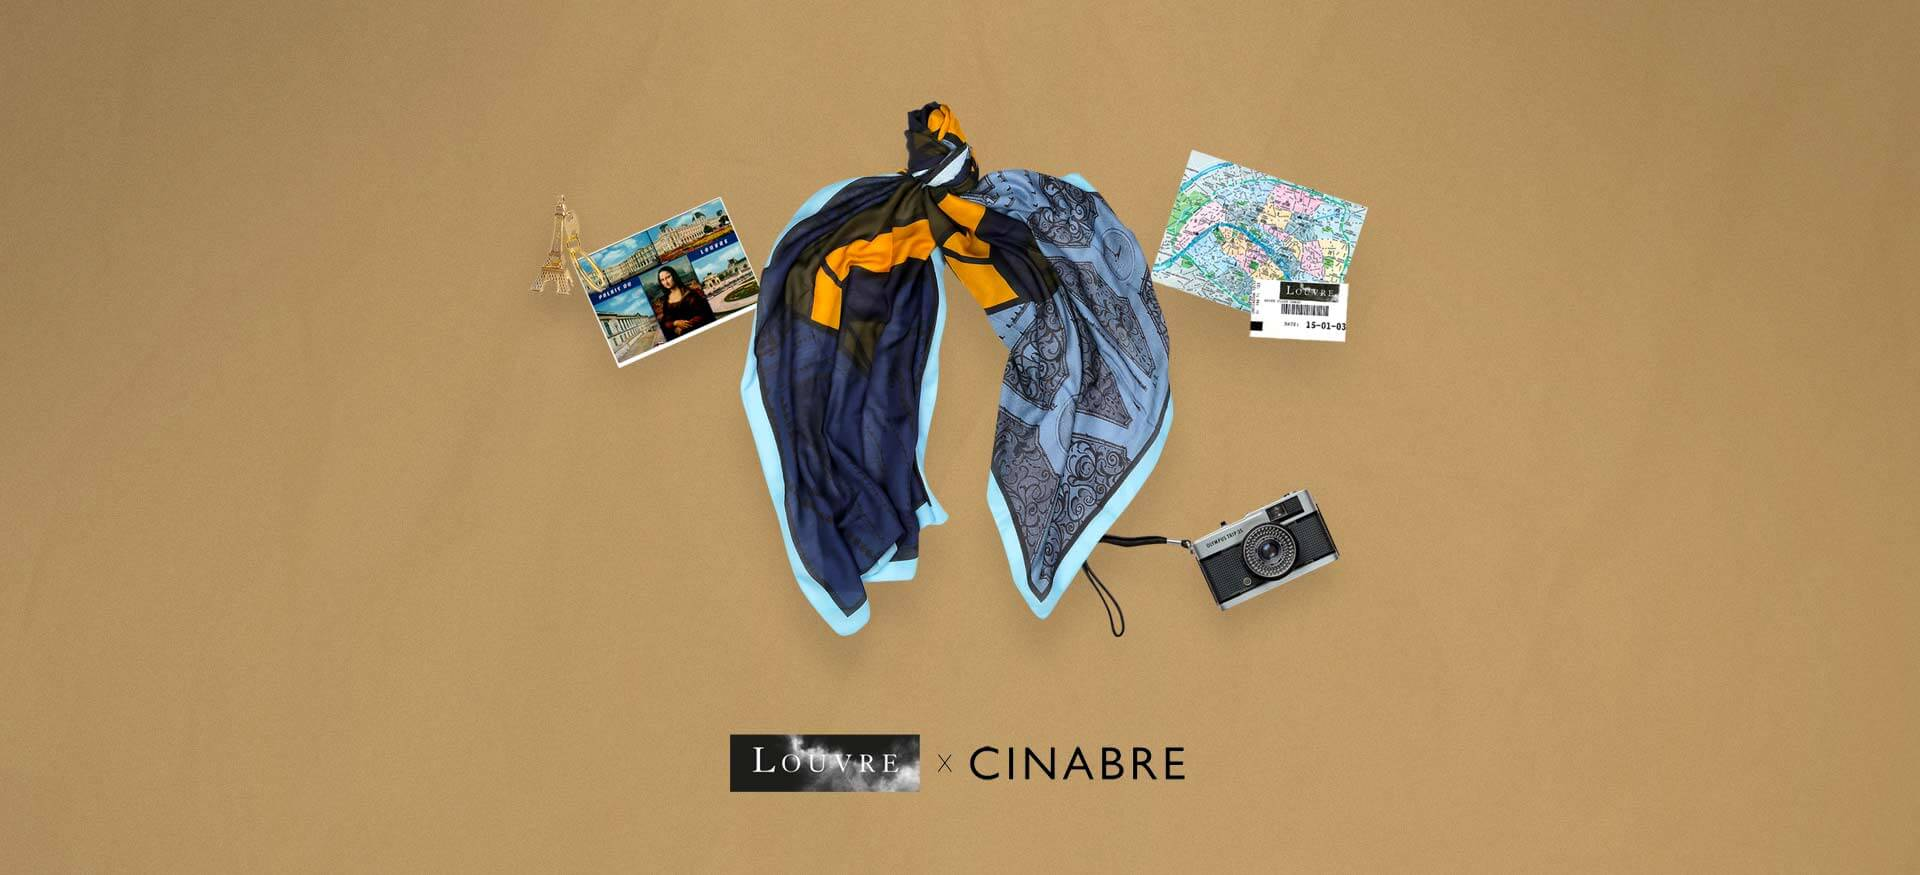 Scarf Cinabre x Musee du Louvre collage touriste